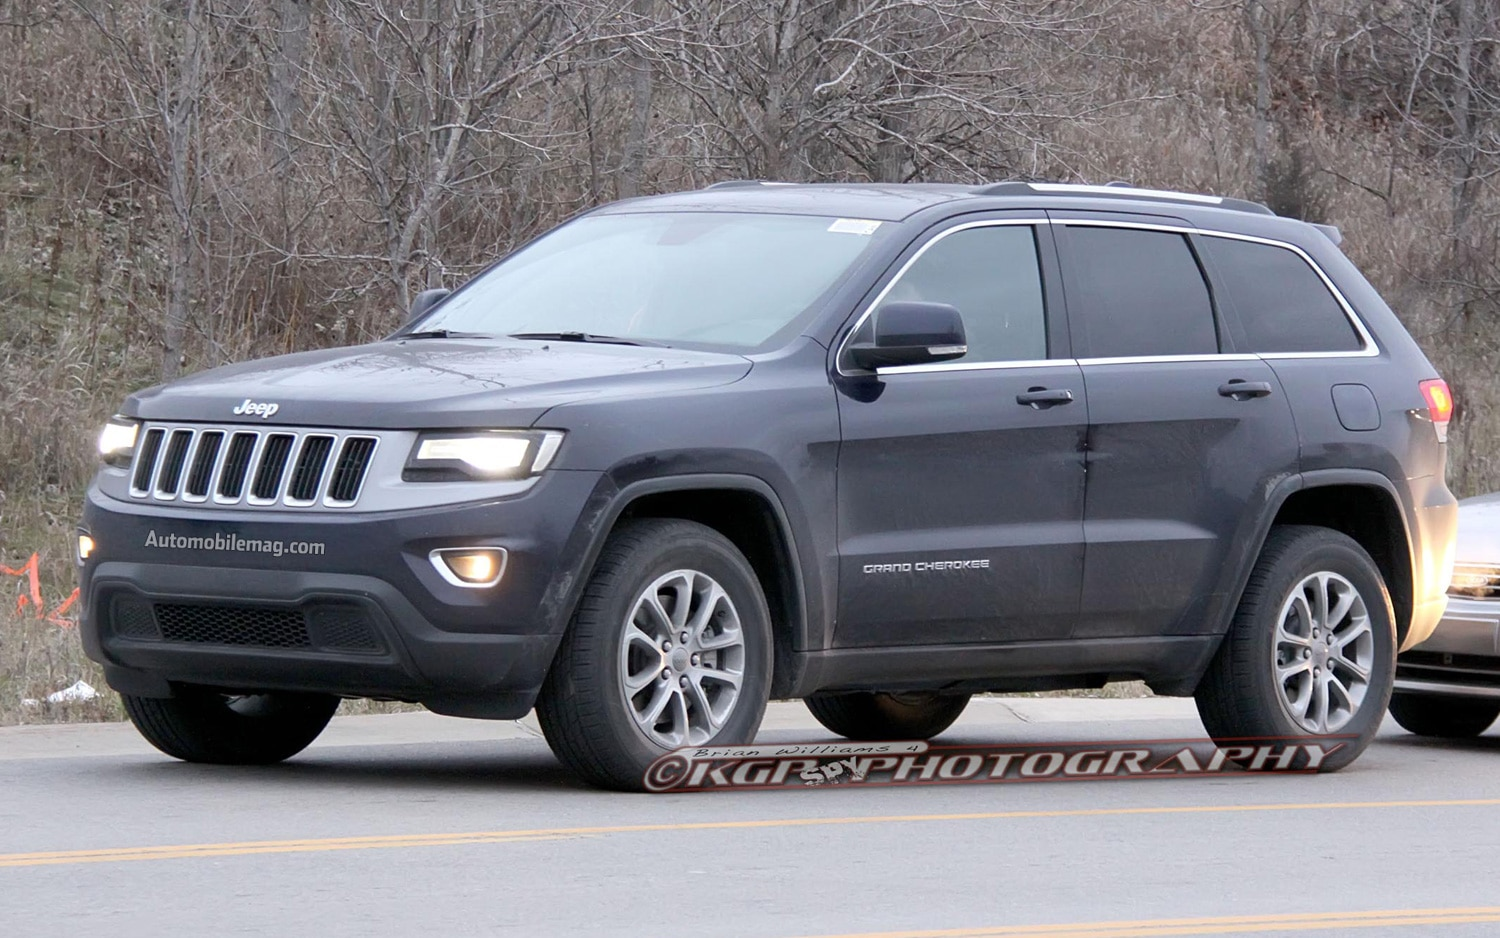 2014 Jeep Grand Cherokee Laredo Front Three Quarters View1